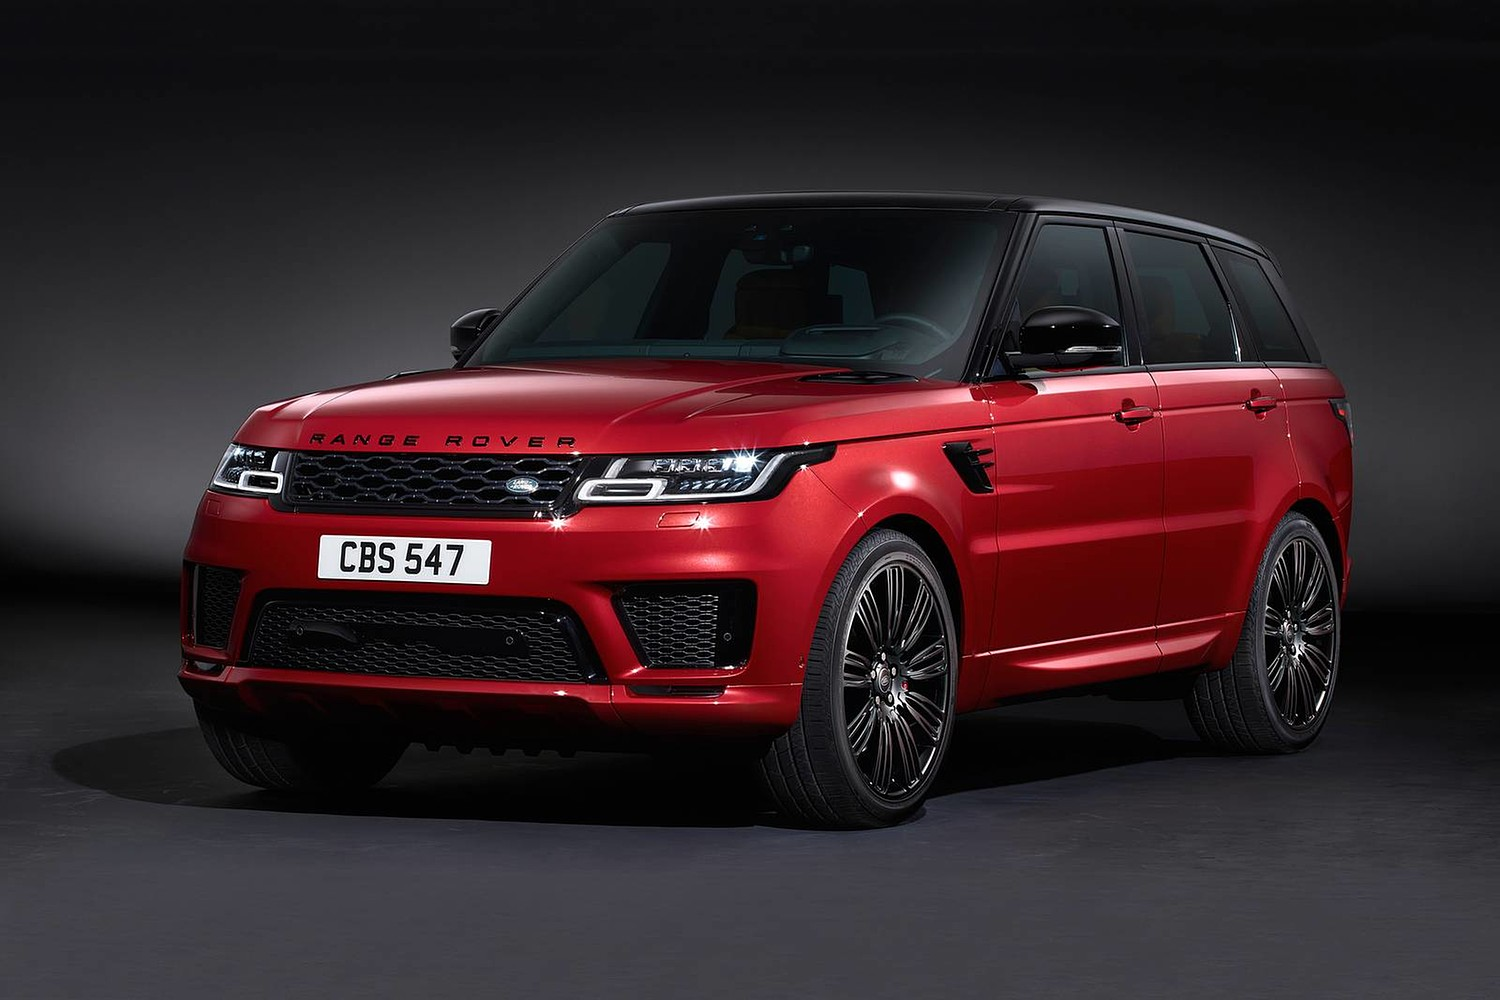 2018 Land Rover Range Rover Sport Autobiography Dynamic 4dr SUV Exterior Shown